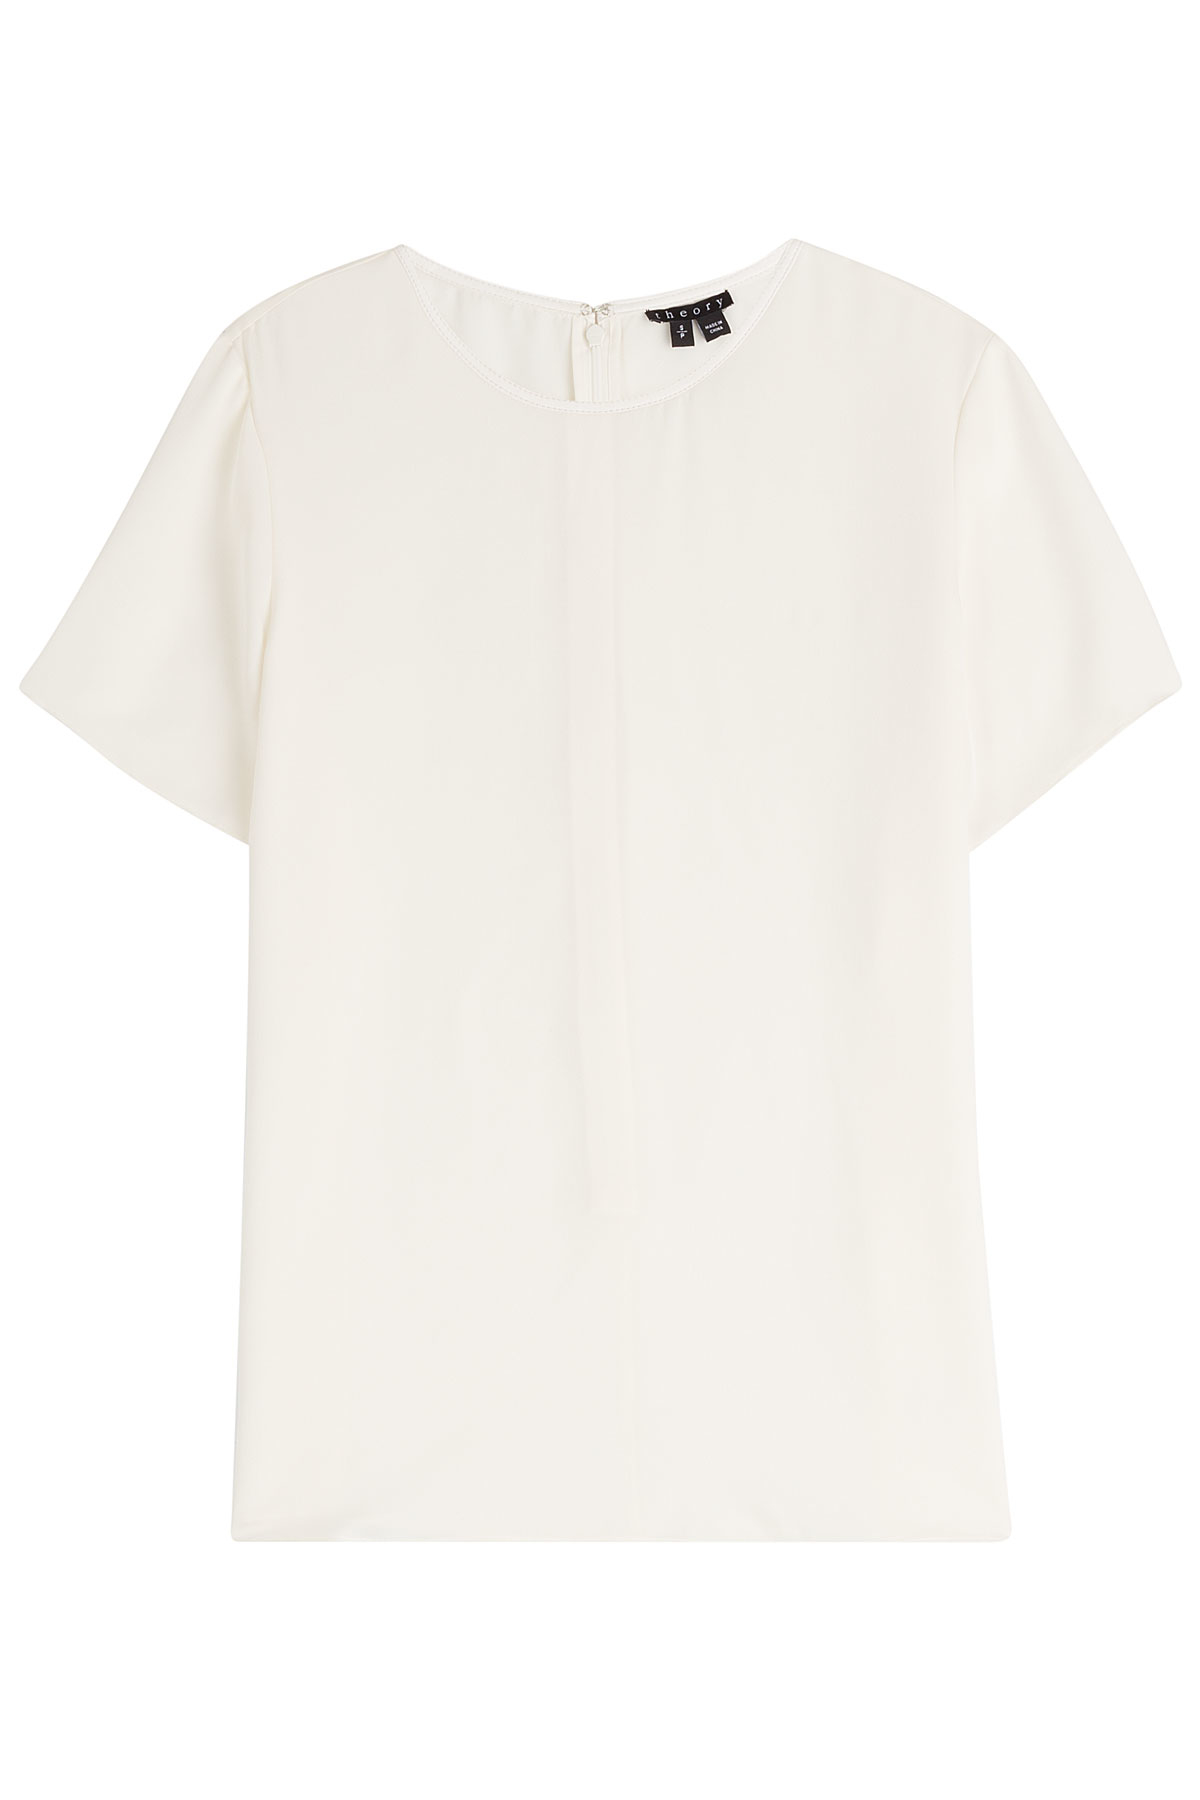 Theory silk t shirt white in white lyst for Silk white t shirt